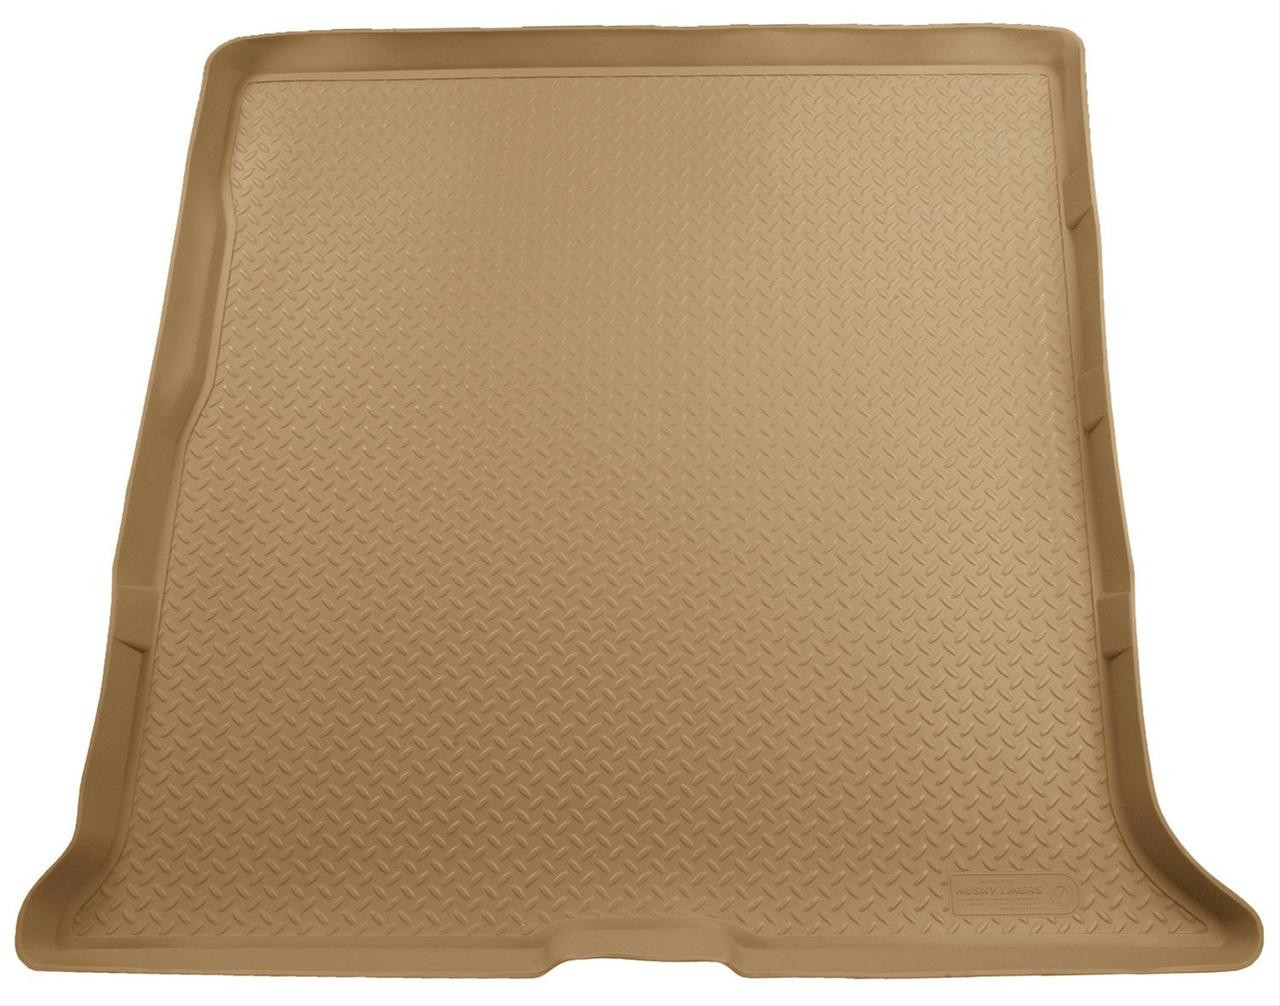 07-14 EXPEDITION EL (FITS TO BACK OF 2ND ROW SEATS) REAR LINER TAN